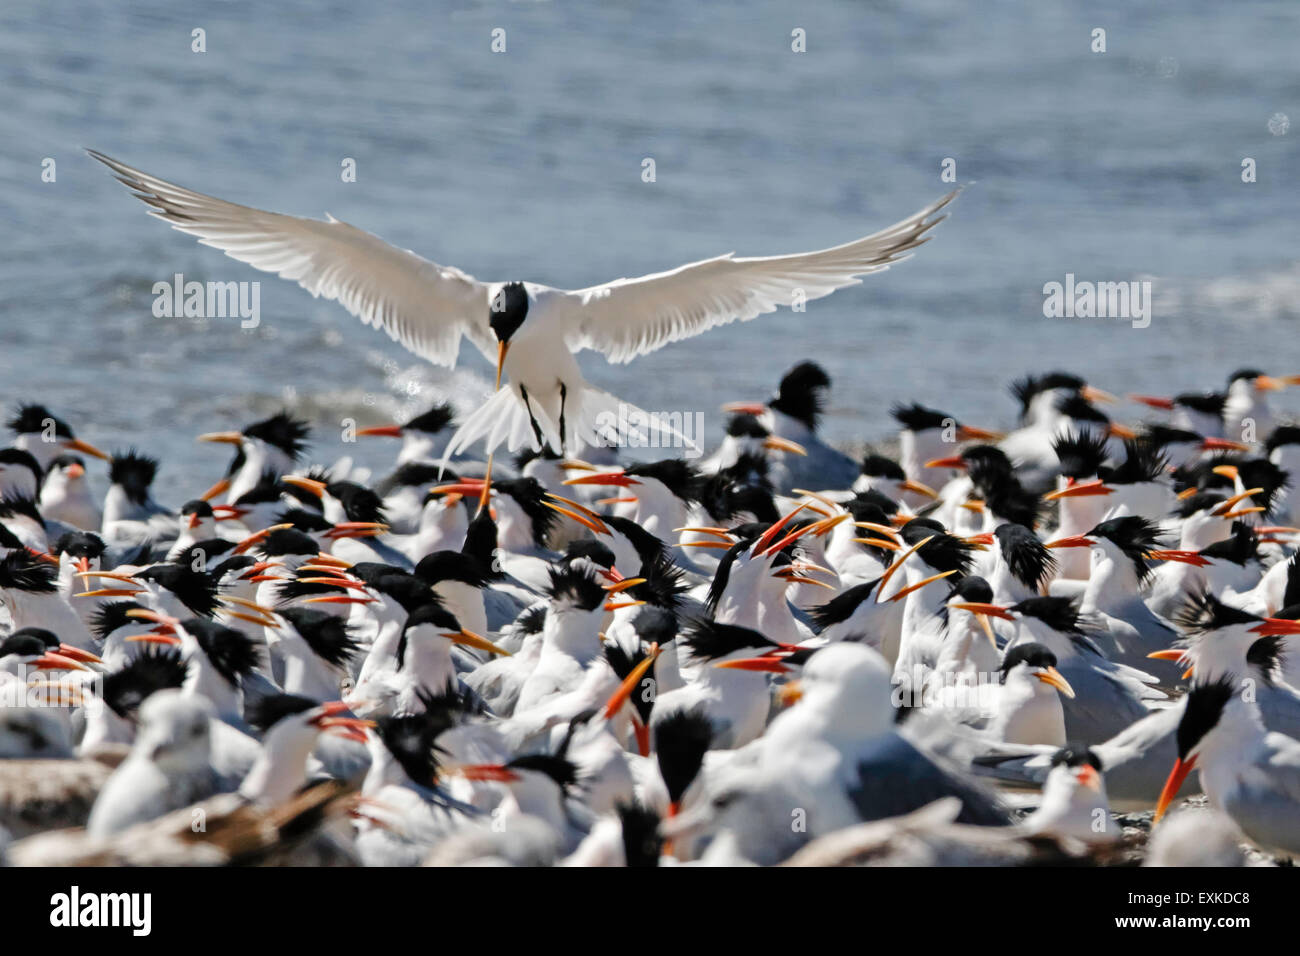 One Elegant Tern hovers above the milling flock, wings out-streched, head bent. West coast of Baja California. - Stock Image